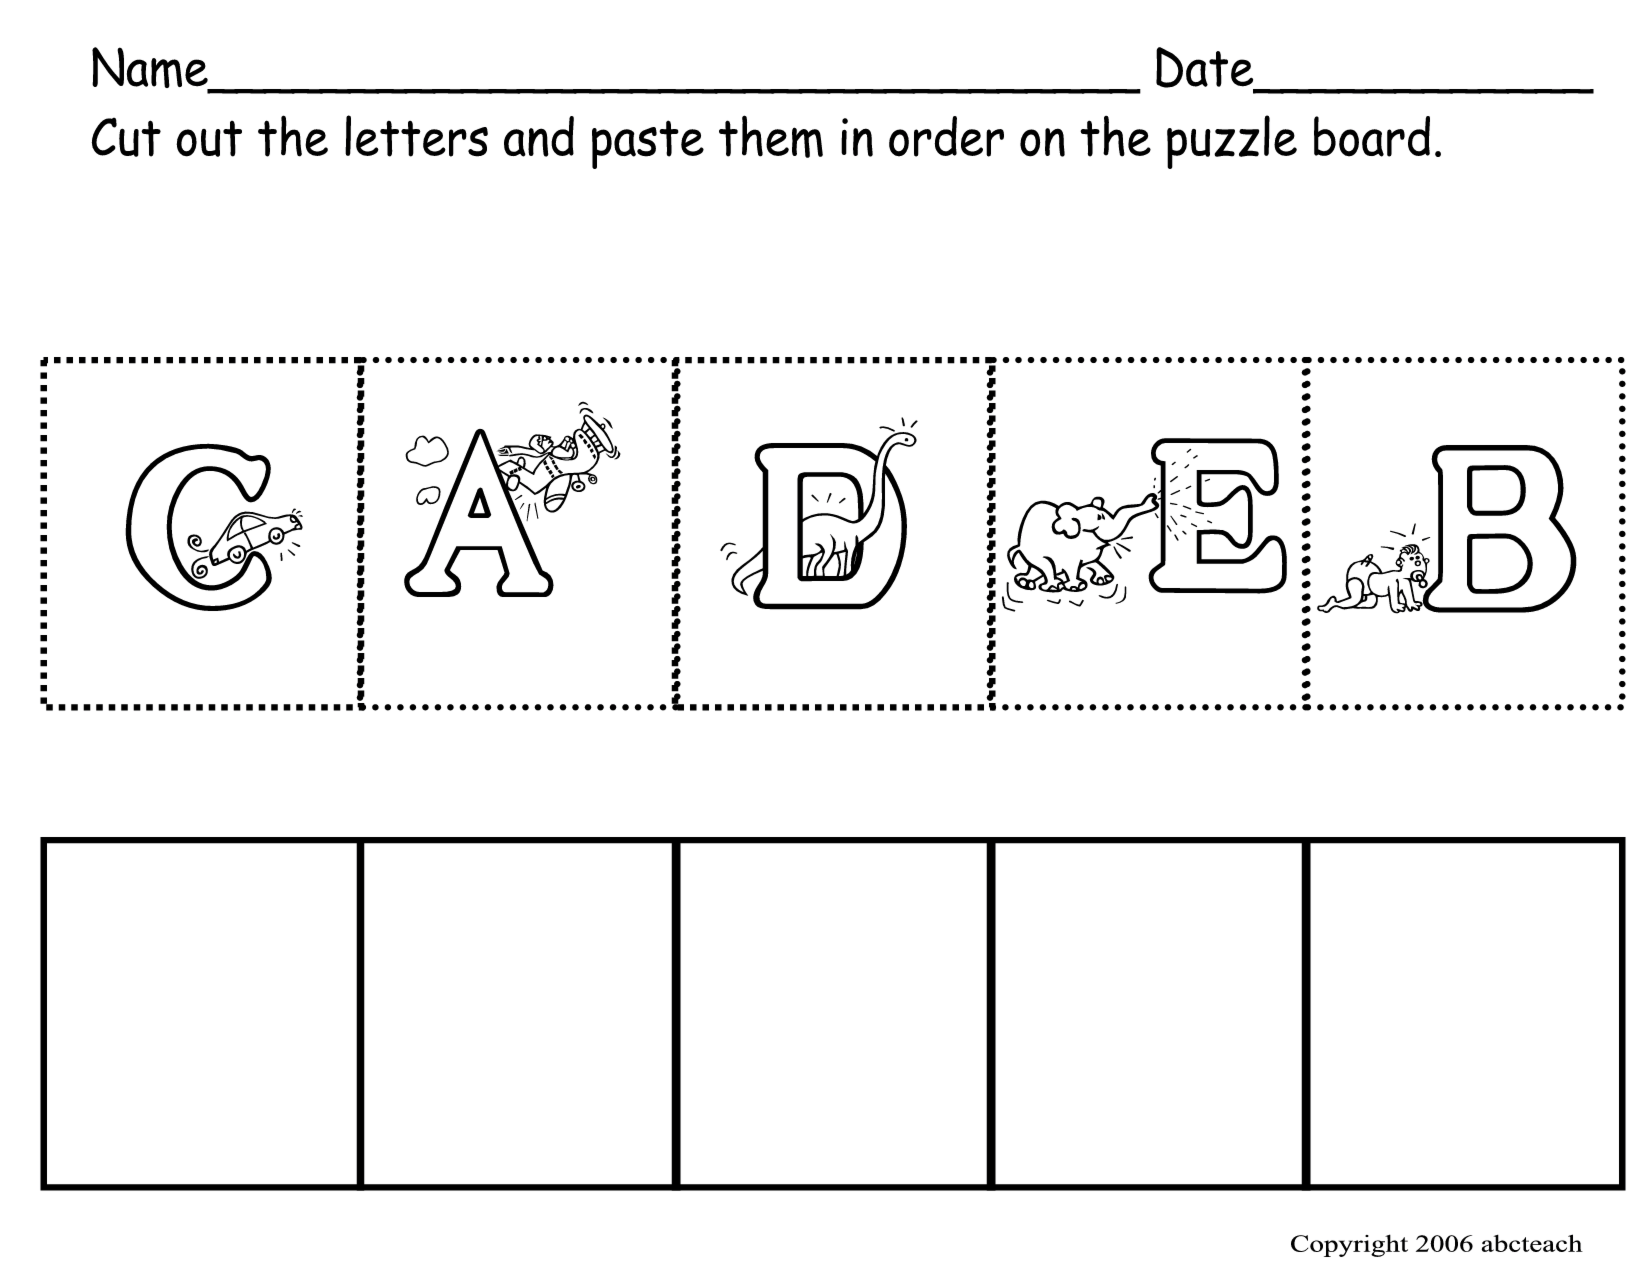 Worksheets Abc Worksheet For Preschool preschool abc worksheets kiduls printable letters printable